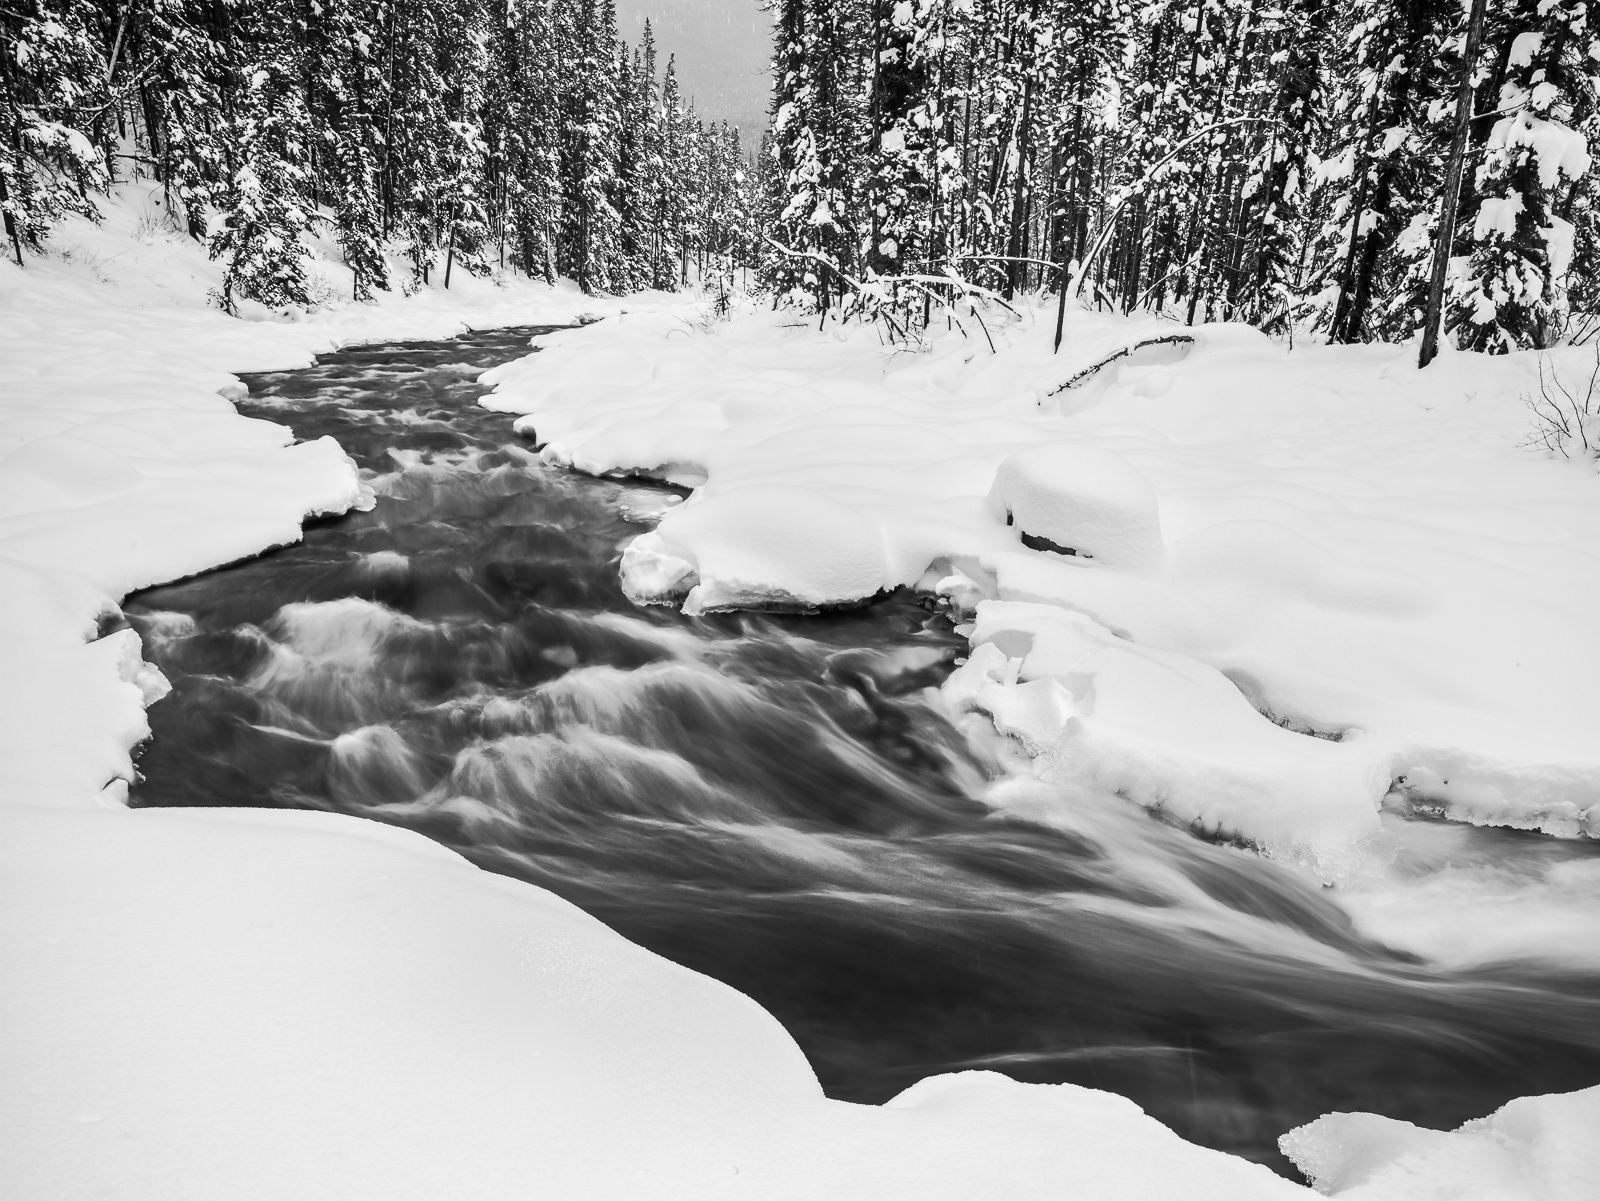 Holding Back Winter, Canada, Horizontal, landscape, winter, Jasper National Park, , BW, B&W, Black, White, photo